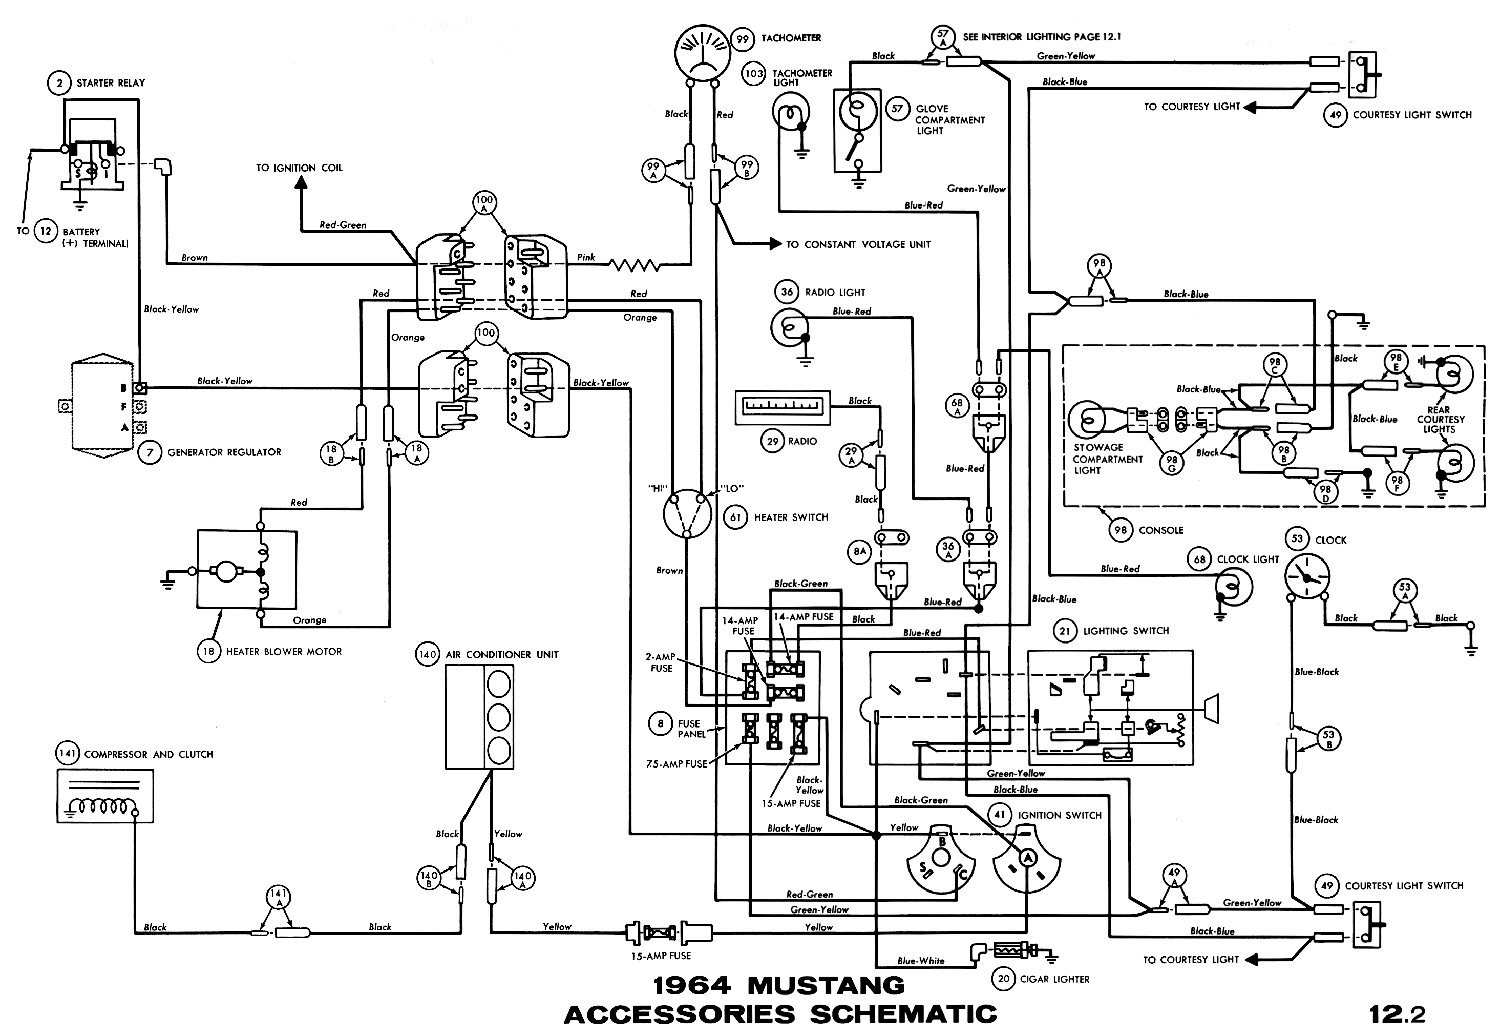 Car Stereo Wiring Harness For 1965 Ford Mustang | Wiring Diagram on 1966 ford mustang harmonic balancer, 1966 ford mustang suspension, 2004 ford mustang wiring harness, 1964 ford galaxie wiring harness, mustang electrical harness, 2006 ford mustang wiring harness, 1999 ford mustang wiring harness, 1966 ford mustang fan clutch, 1966 ford mustang lights, 1966 ford mustang exhaust, 1966 ford mustang muffler, 1973 ford torino wiring harness, 1966 ford mustang air cleaner, 1998 ford mustang wiring harness, 1966 ford mustang drive shaft, 1966 ford mustang neutral safety switch, 1966 ford mustang grille, 1990 ford mustang wiring harness, 1987 ford mustang wiring harness, 1966 ford mustang tires,